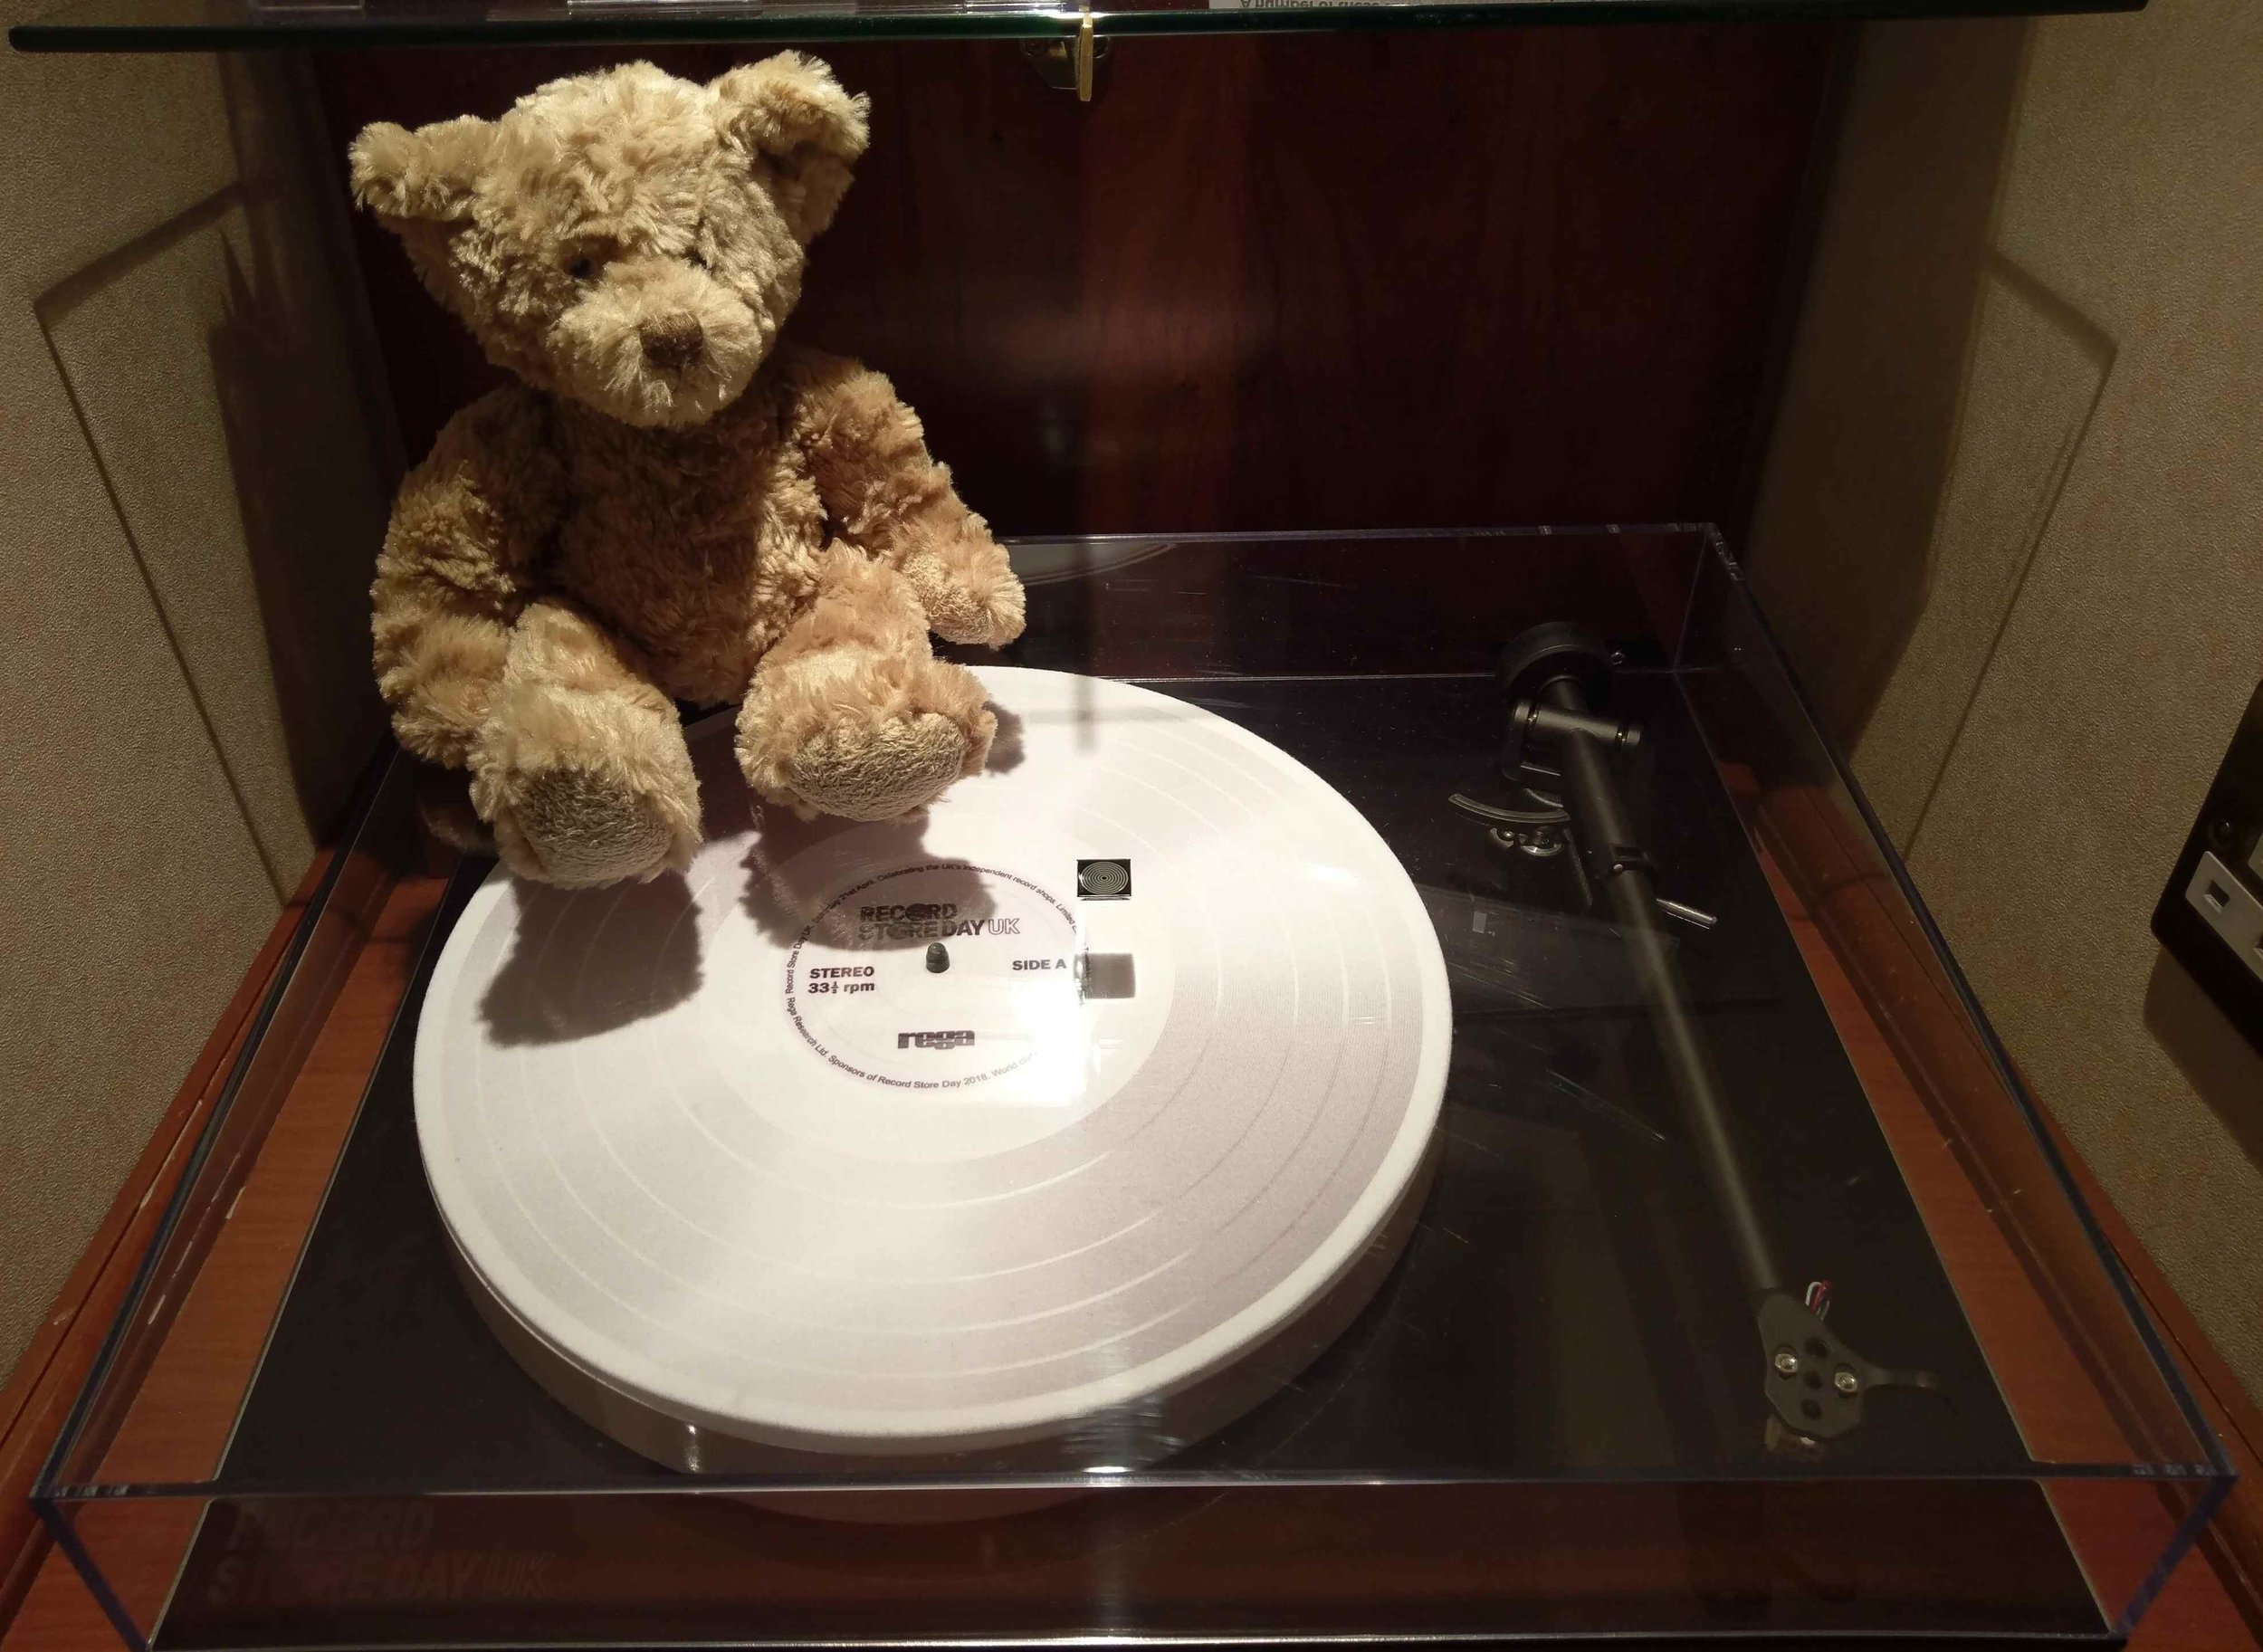 Rega turntables have always been popular with the little bear and this years Record Store Day limited edition promises to be a corker!